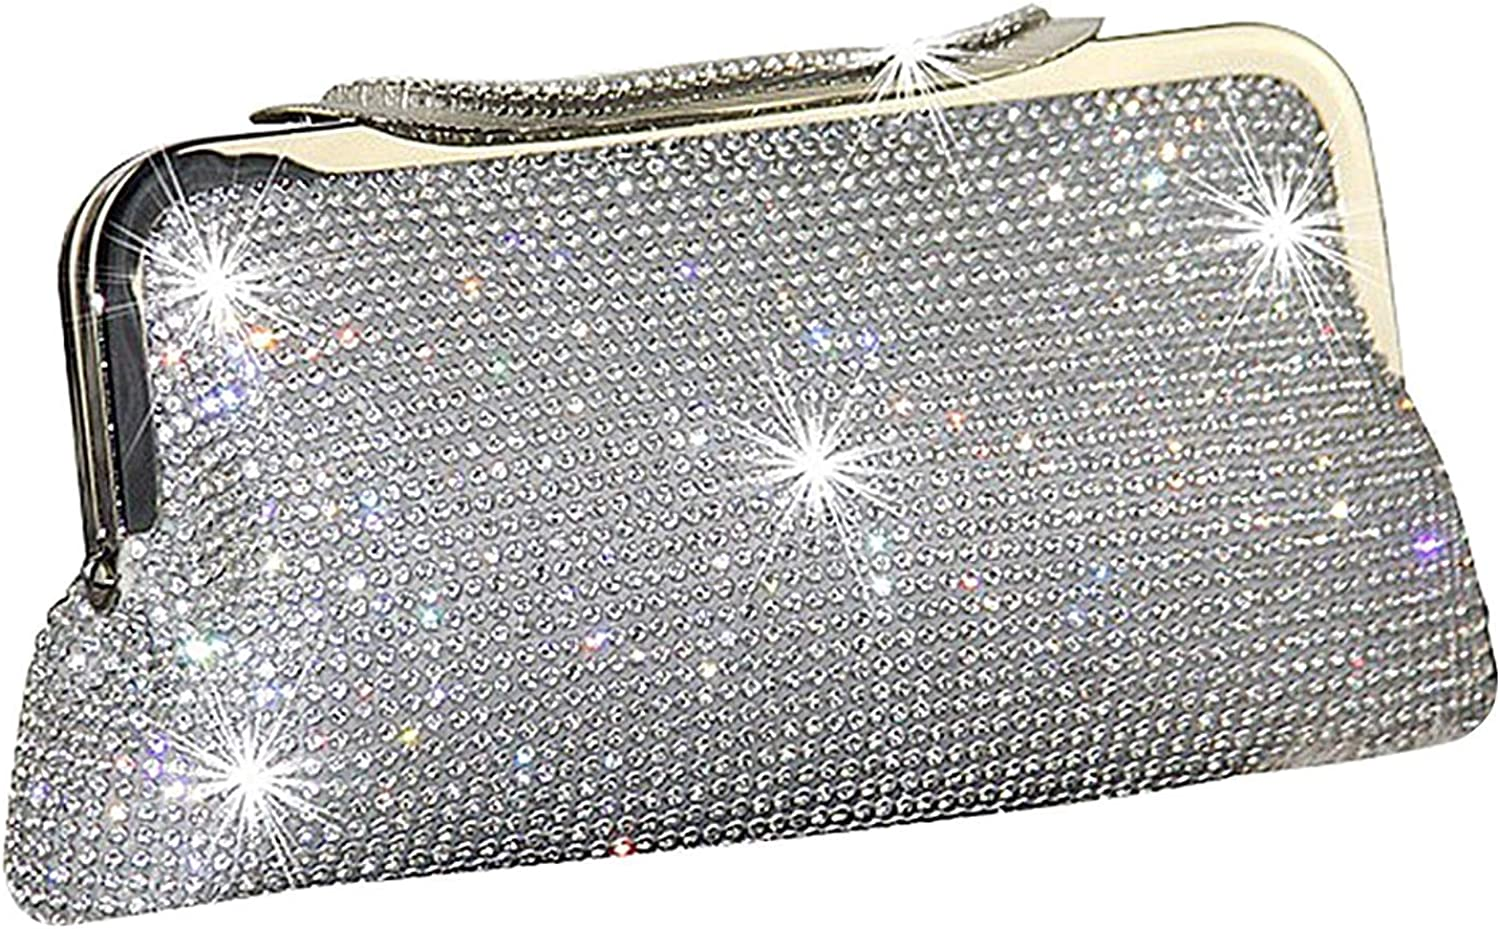 Ladies Handbag Women's Shiny Diamonds Evening Clutch,Crystal Sequins Clutch Handbags with Shoulder Chain Included (color   B, Size   23x13cm(9x5inch))